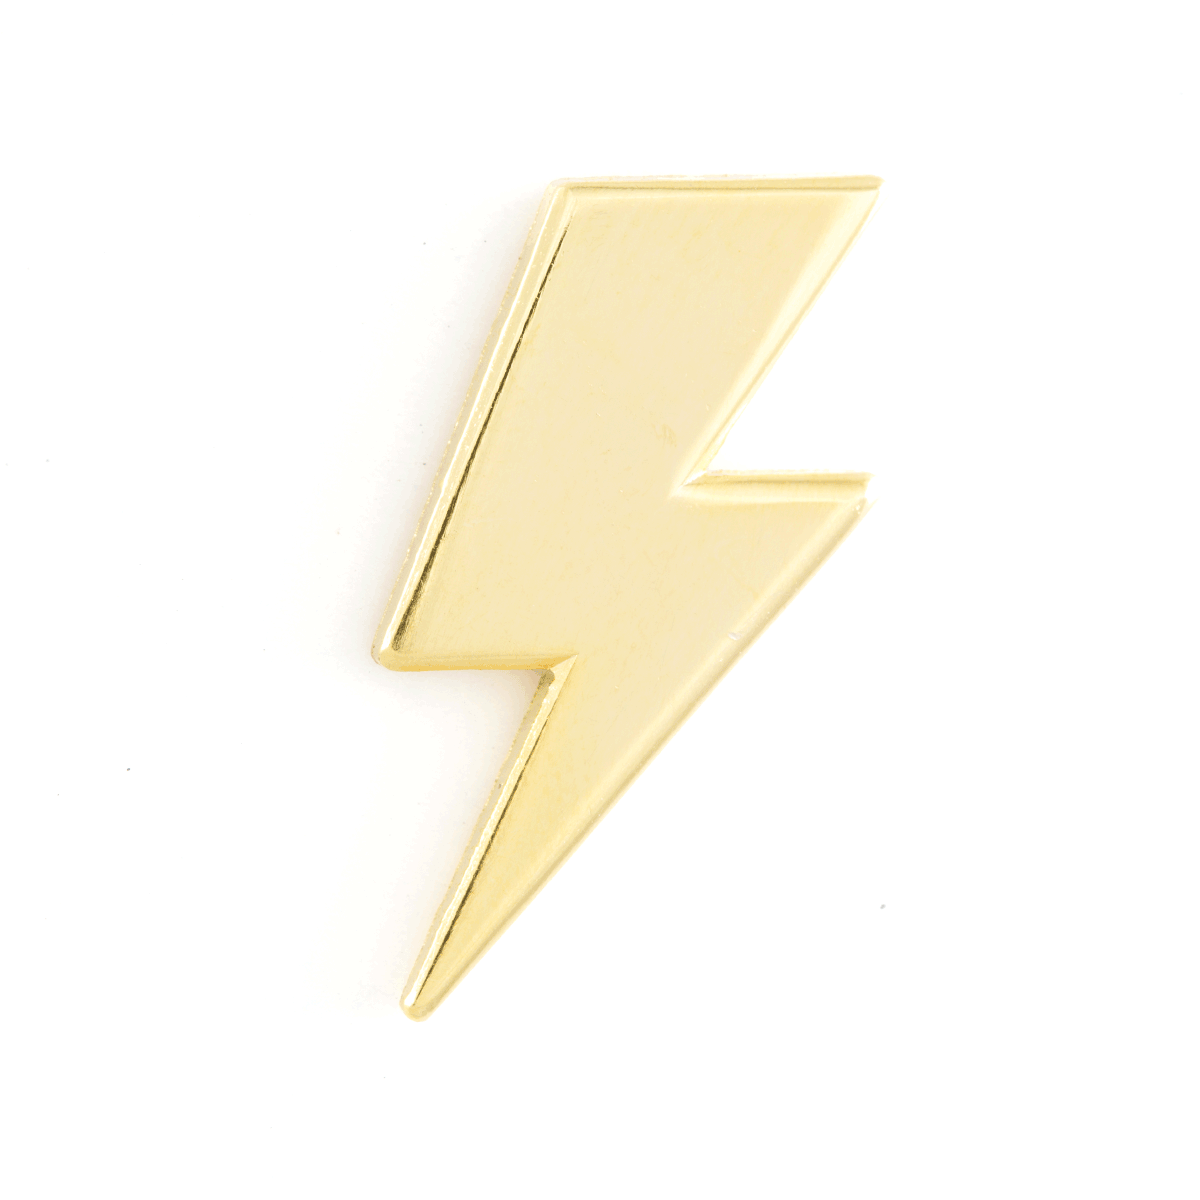 lightning bolt pin these are things